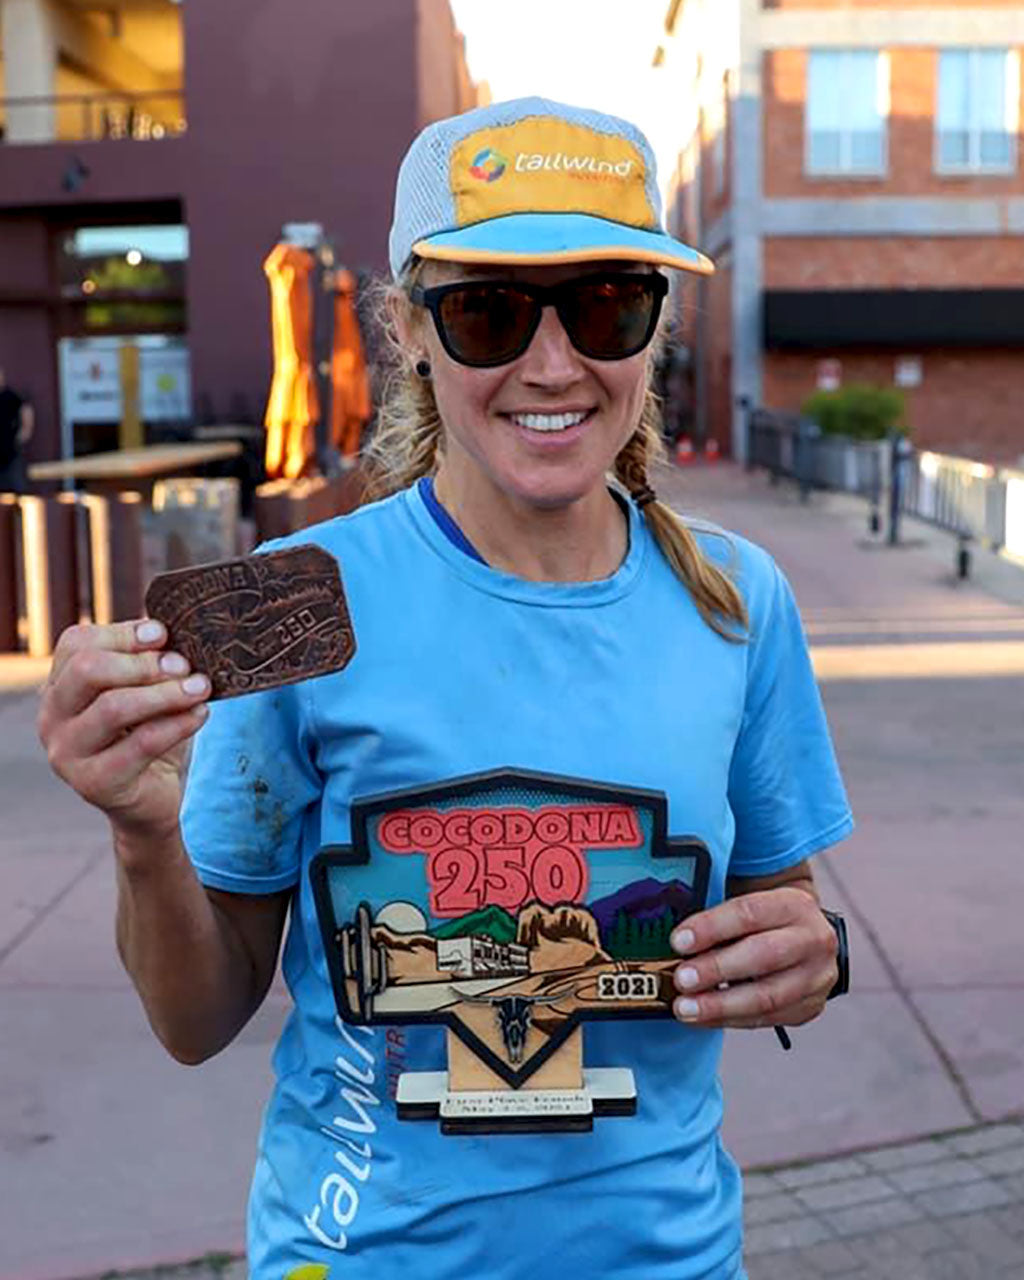 Maggie Guterl holding buckle and first place trophy for Aravaipa Cocodona 250 Ultramarathon